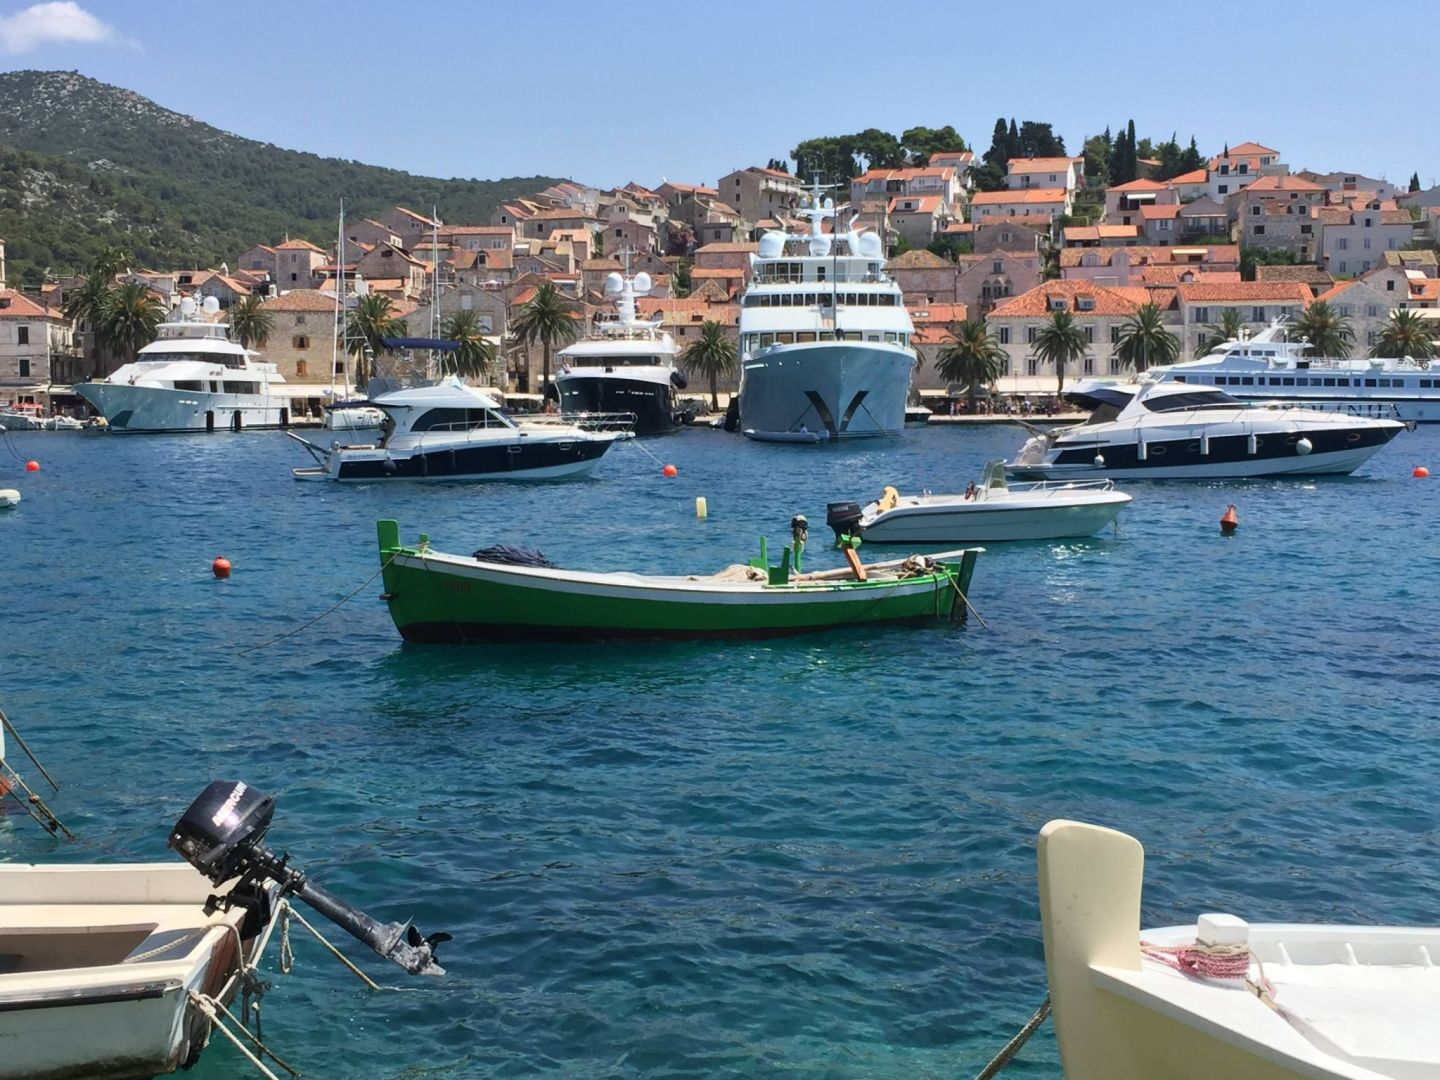 Boats of Hvar, Croatia